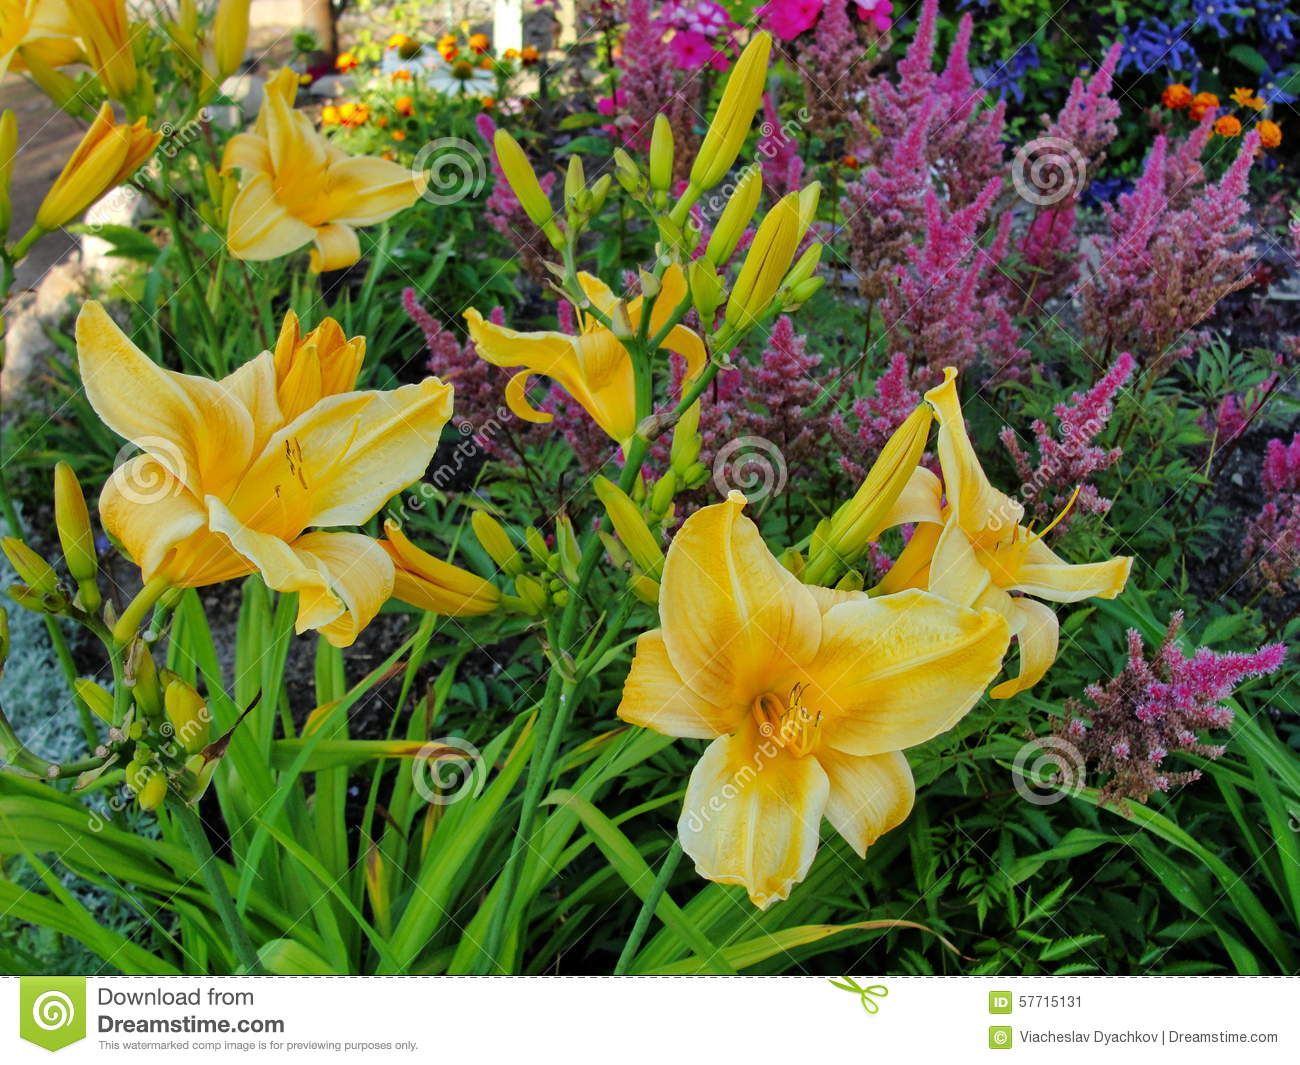 beautiful flowers in the summer garden. large yellow terry day-lily